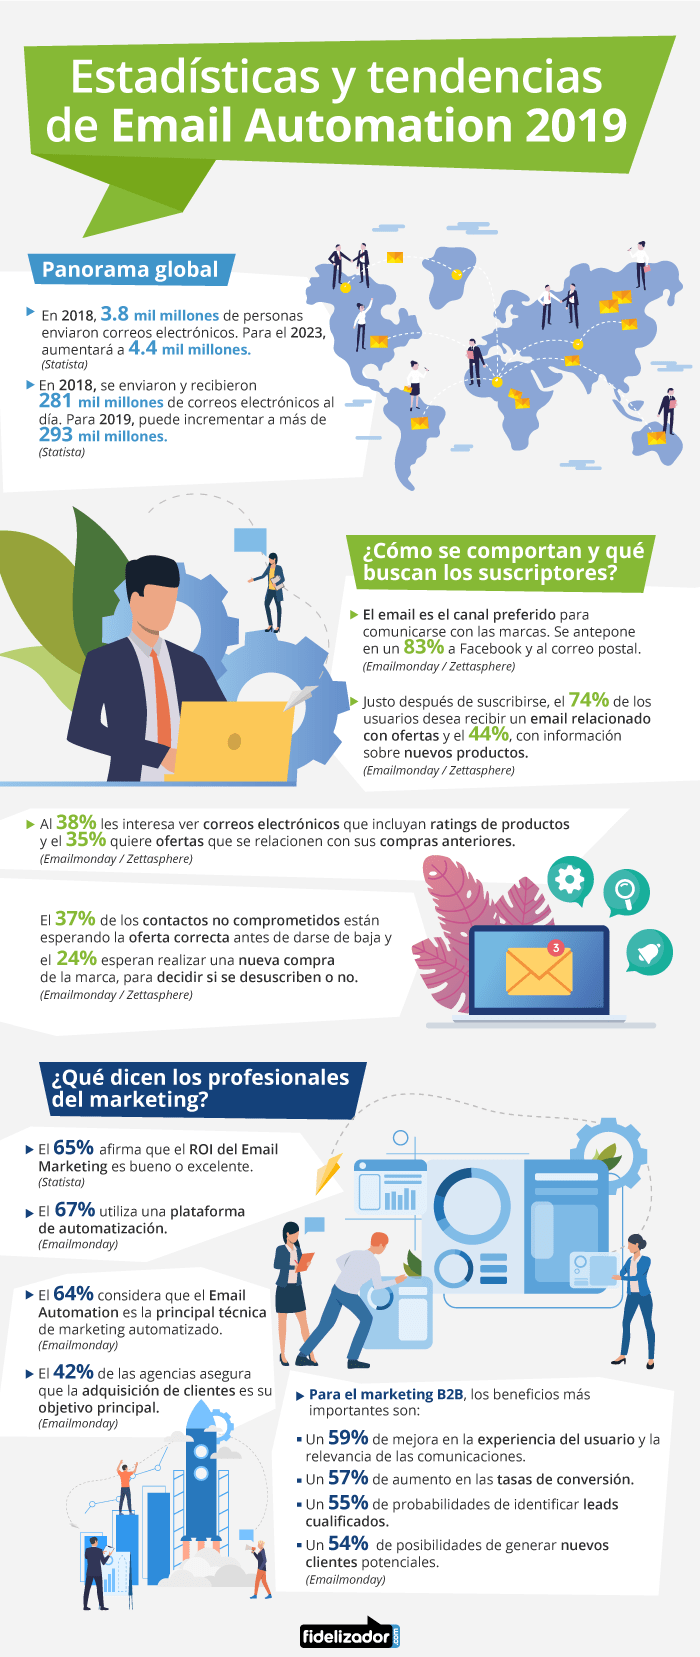 Estadísticas y tendencias de email automation